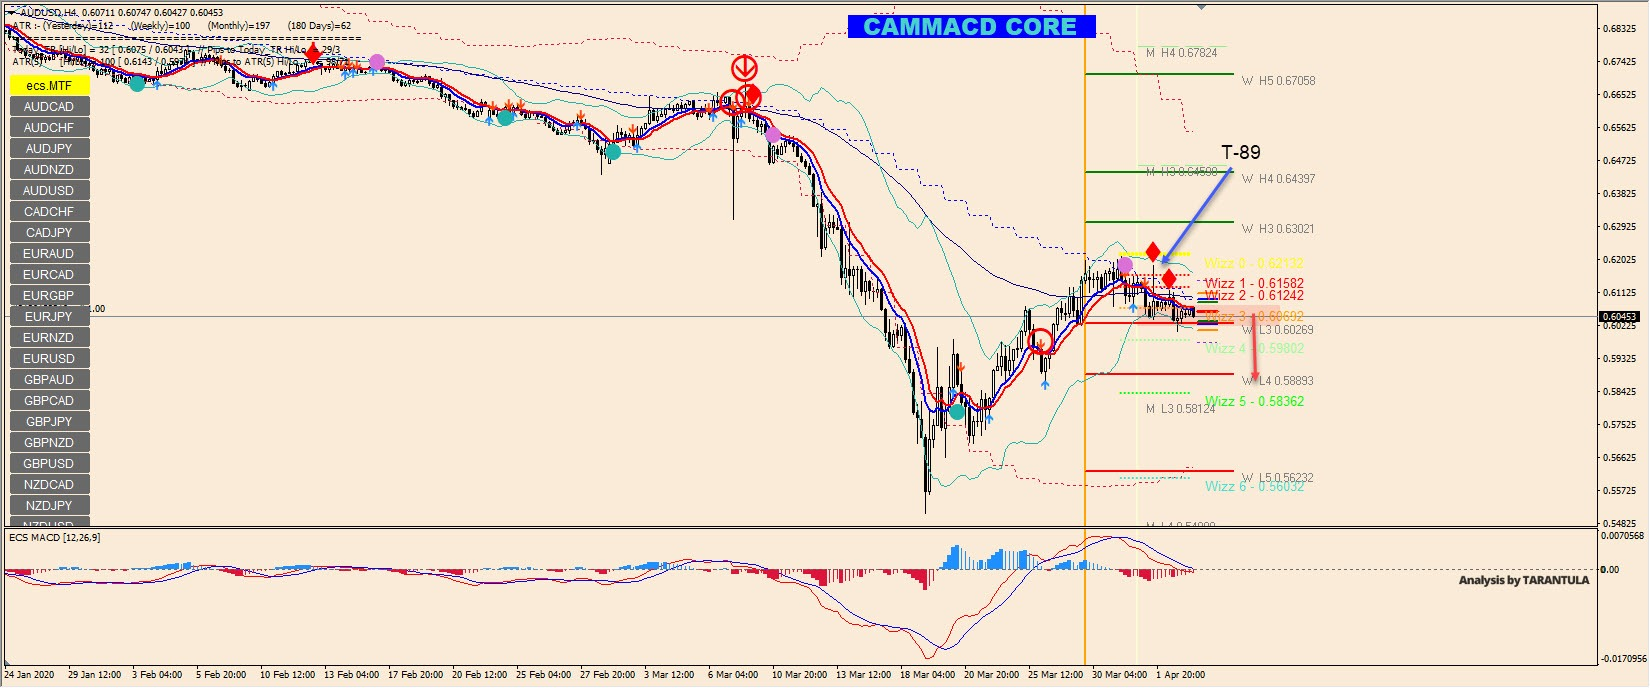 AUD/USD price is targeting 0.6000 and below